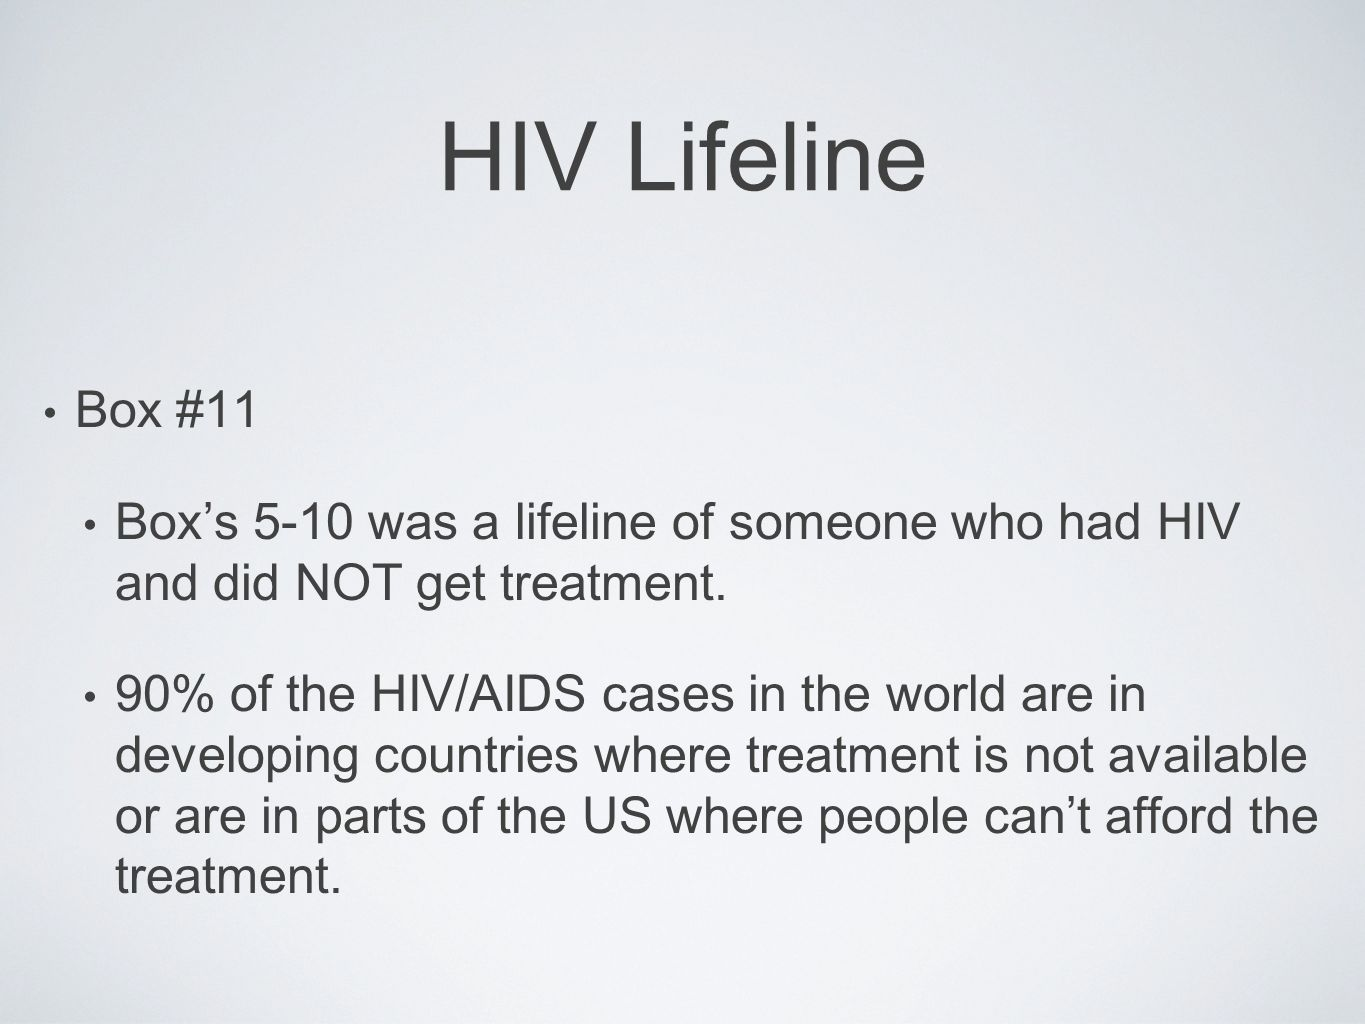 HIV Lifeline Box #11. Box's 5-10 was a lifeline of someone who had HIV and did NOT get treatment.